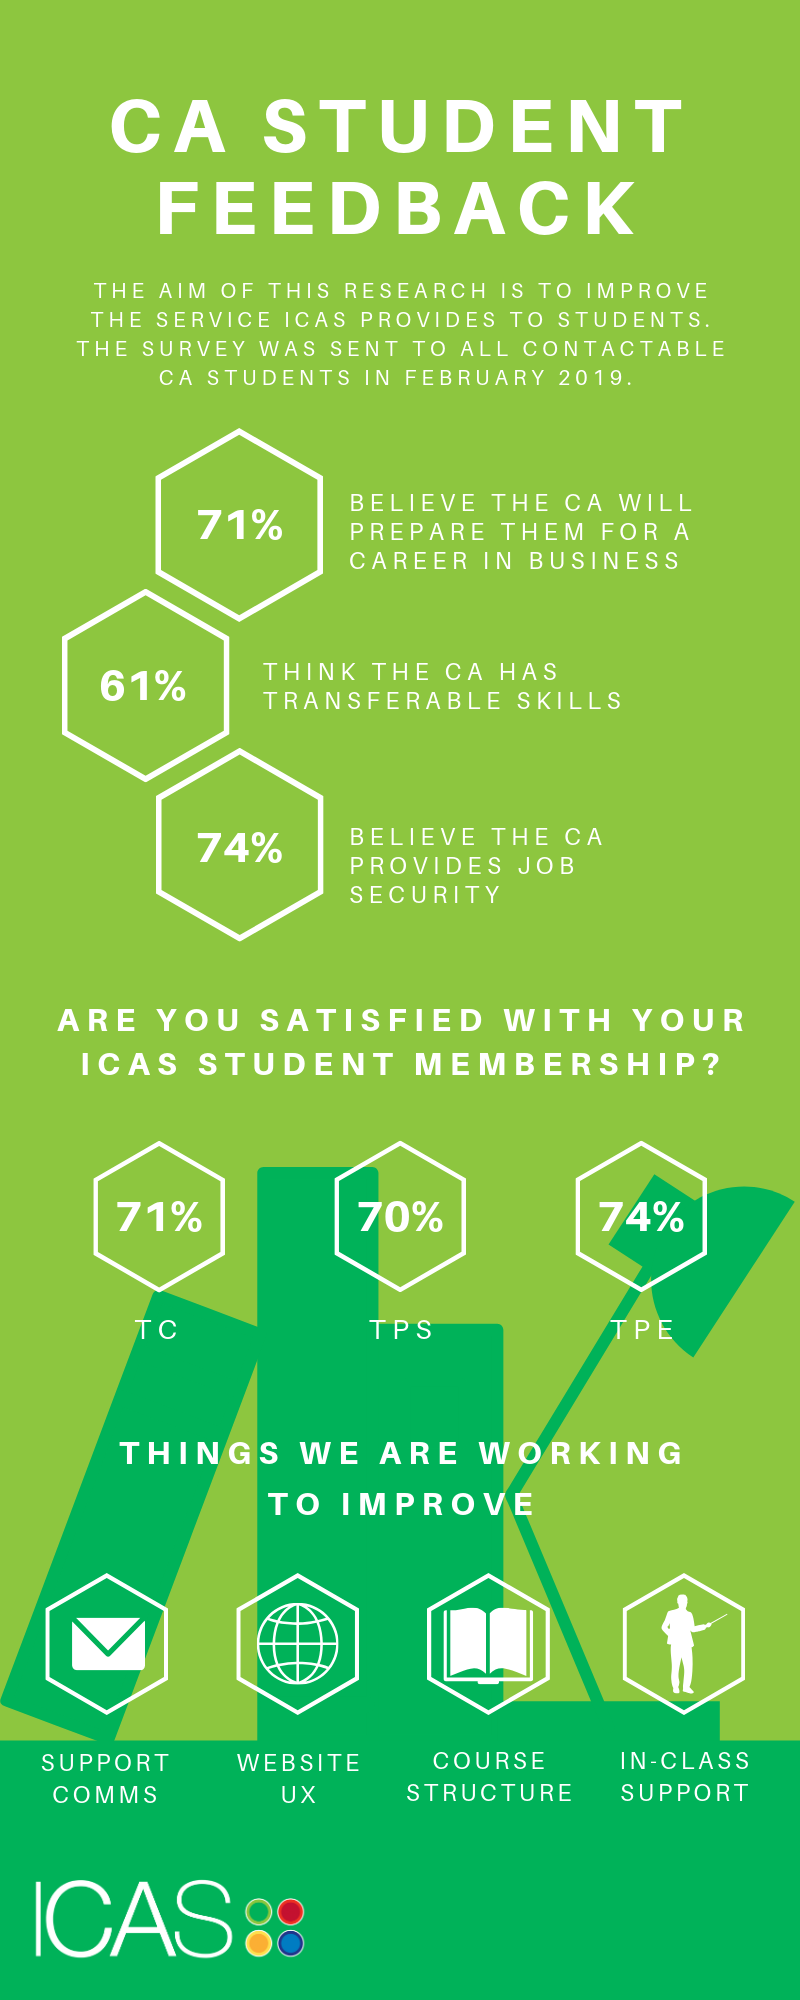 CA Student Feedback infographic